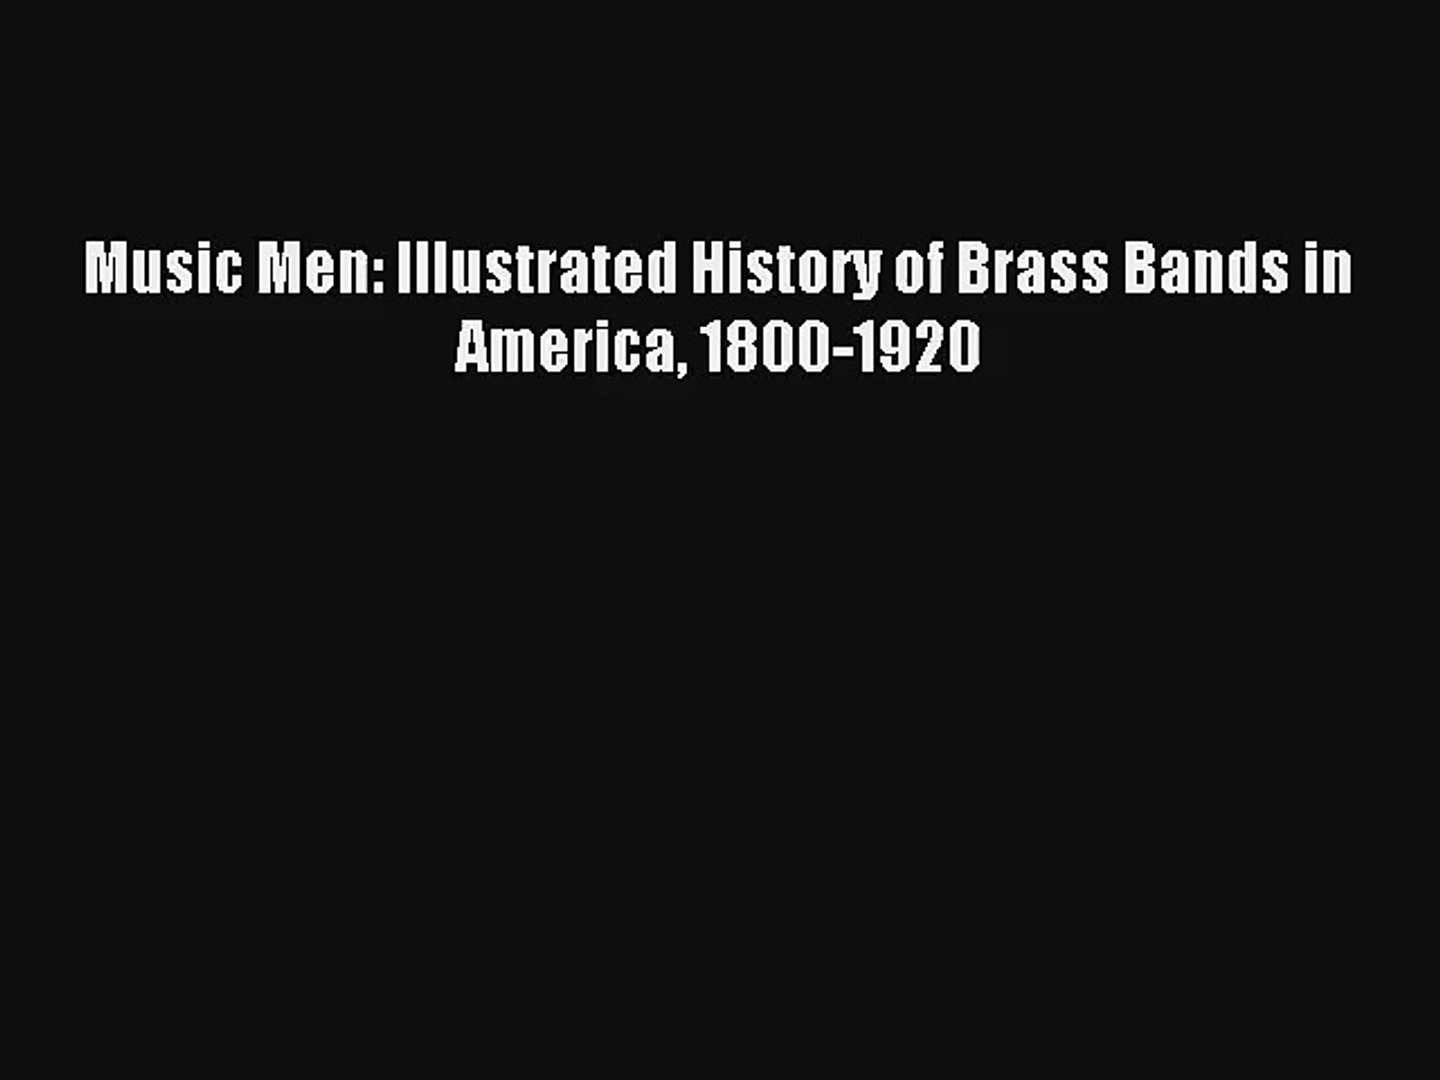 [PDF Download] Music Men: Illustrated History of Brass Bands in America 1800-1920# [Read] Online